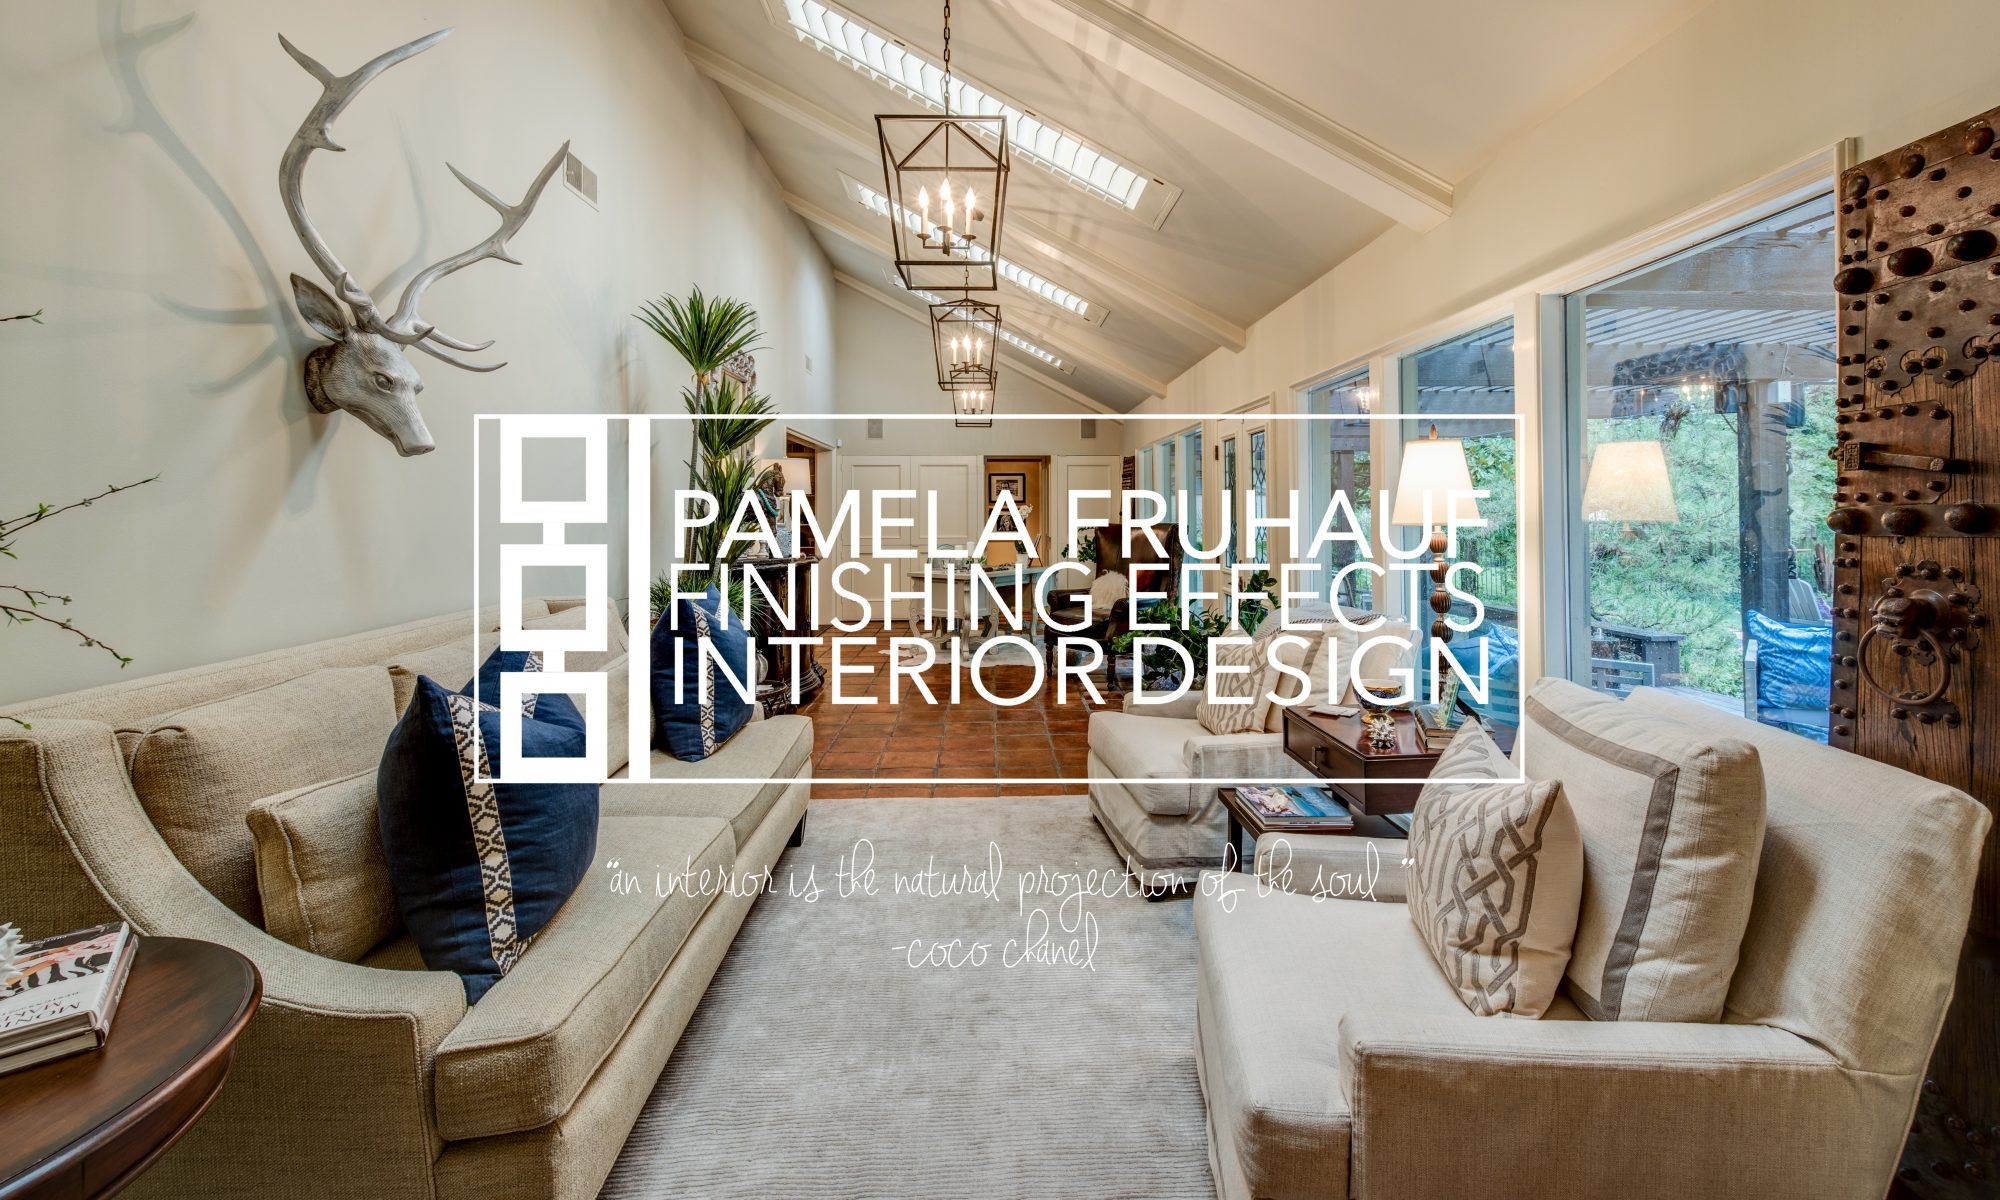 Pam Fruhauf Interior Design An interior is the natural projection